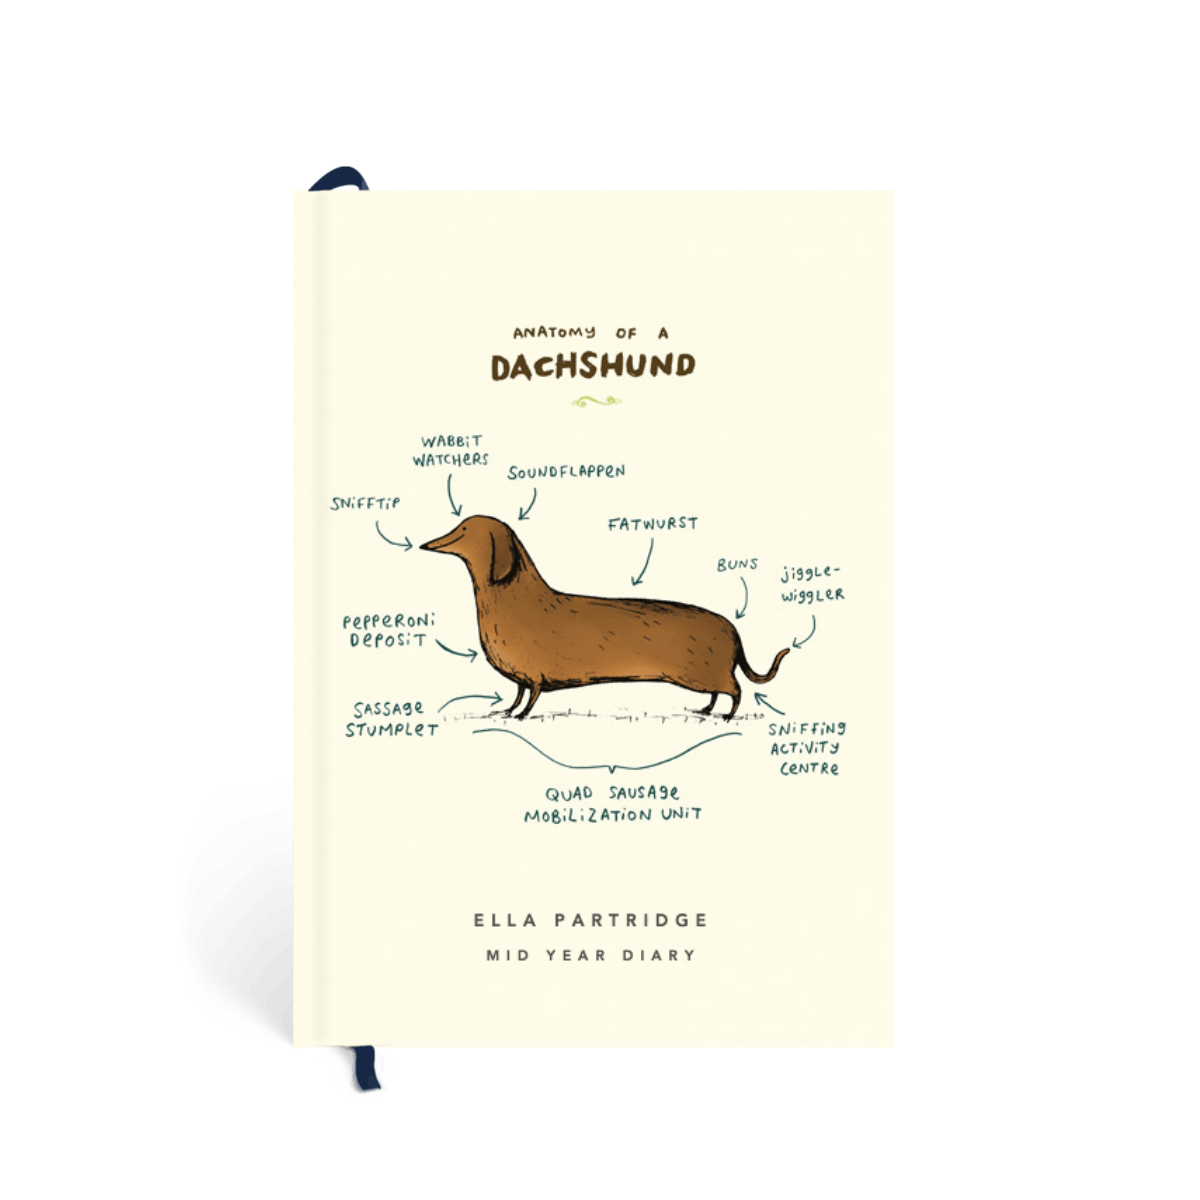 Https%3a%2f%2fwww.papier.com%2fproduct image%2f71978%2f36%2fanatomy of a dachshund 16980 front 1556054042.png?ixlib=rb 1.1